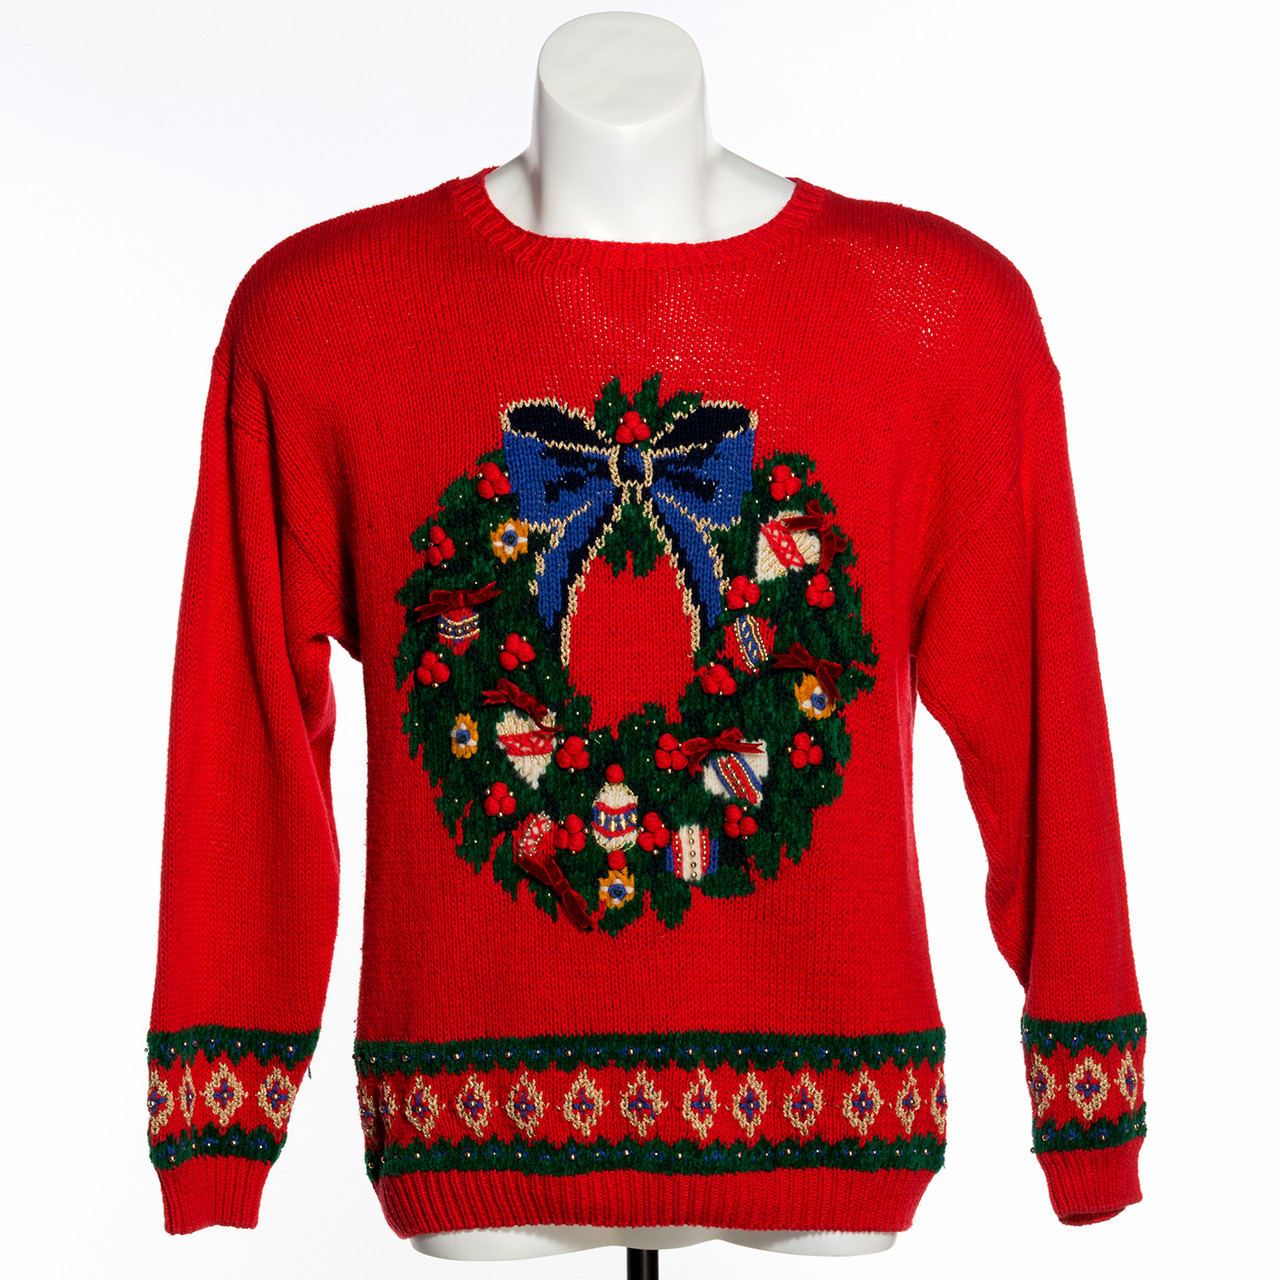 Vintage Christmas Sweaters.Christmas Wreath Red Vintage Ugly Sweater